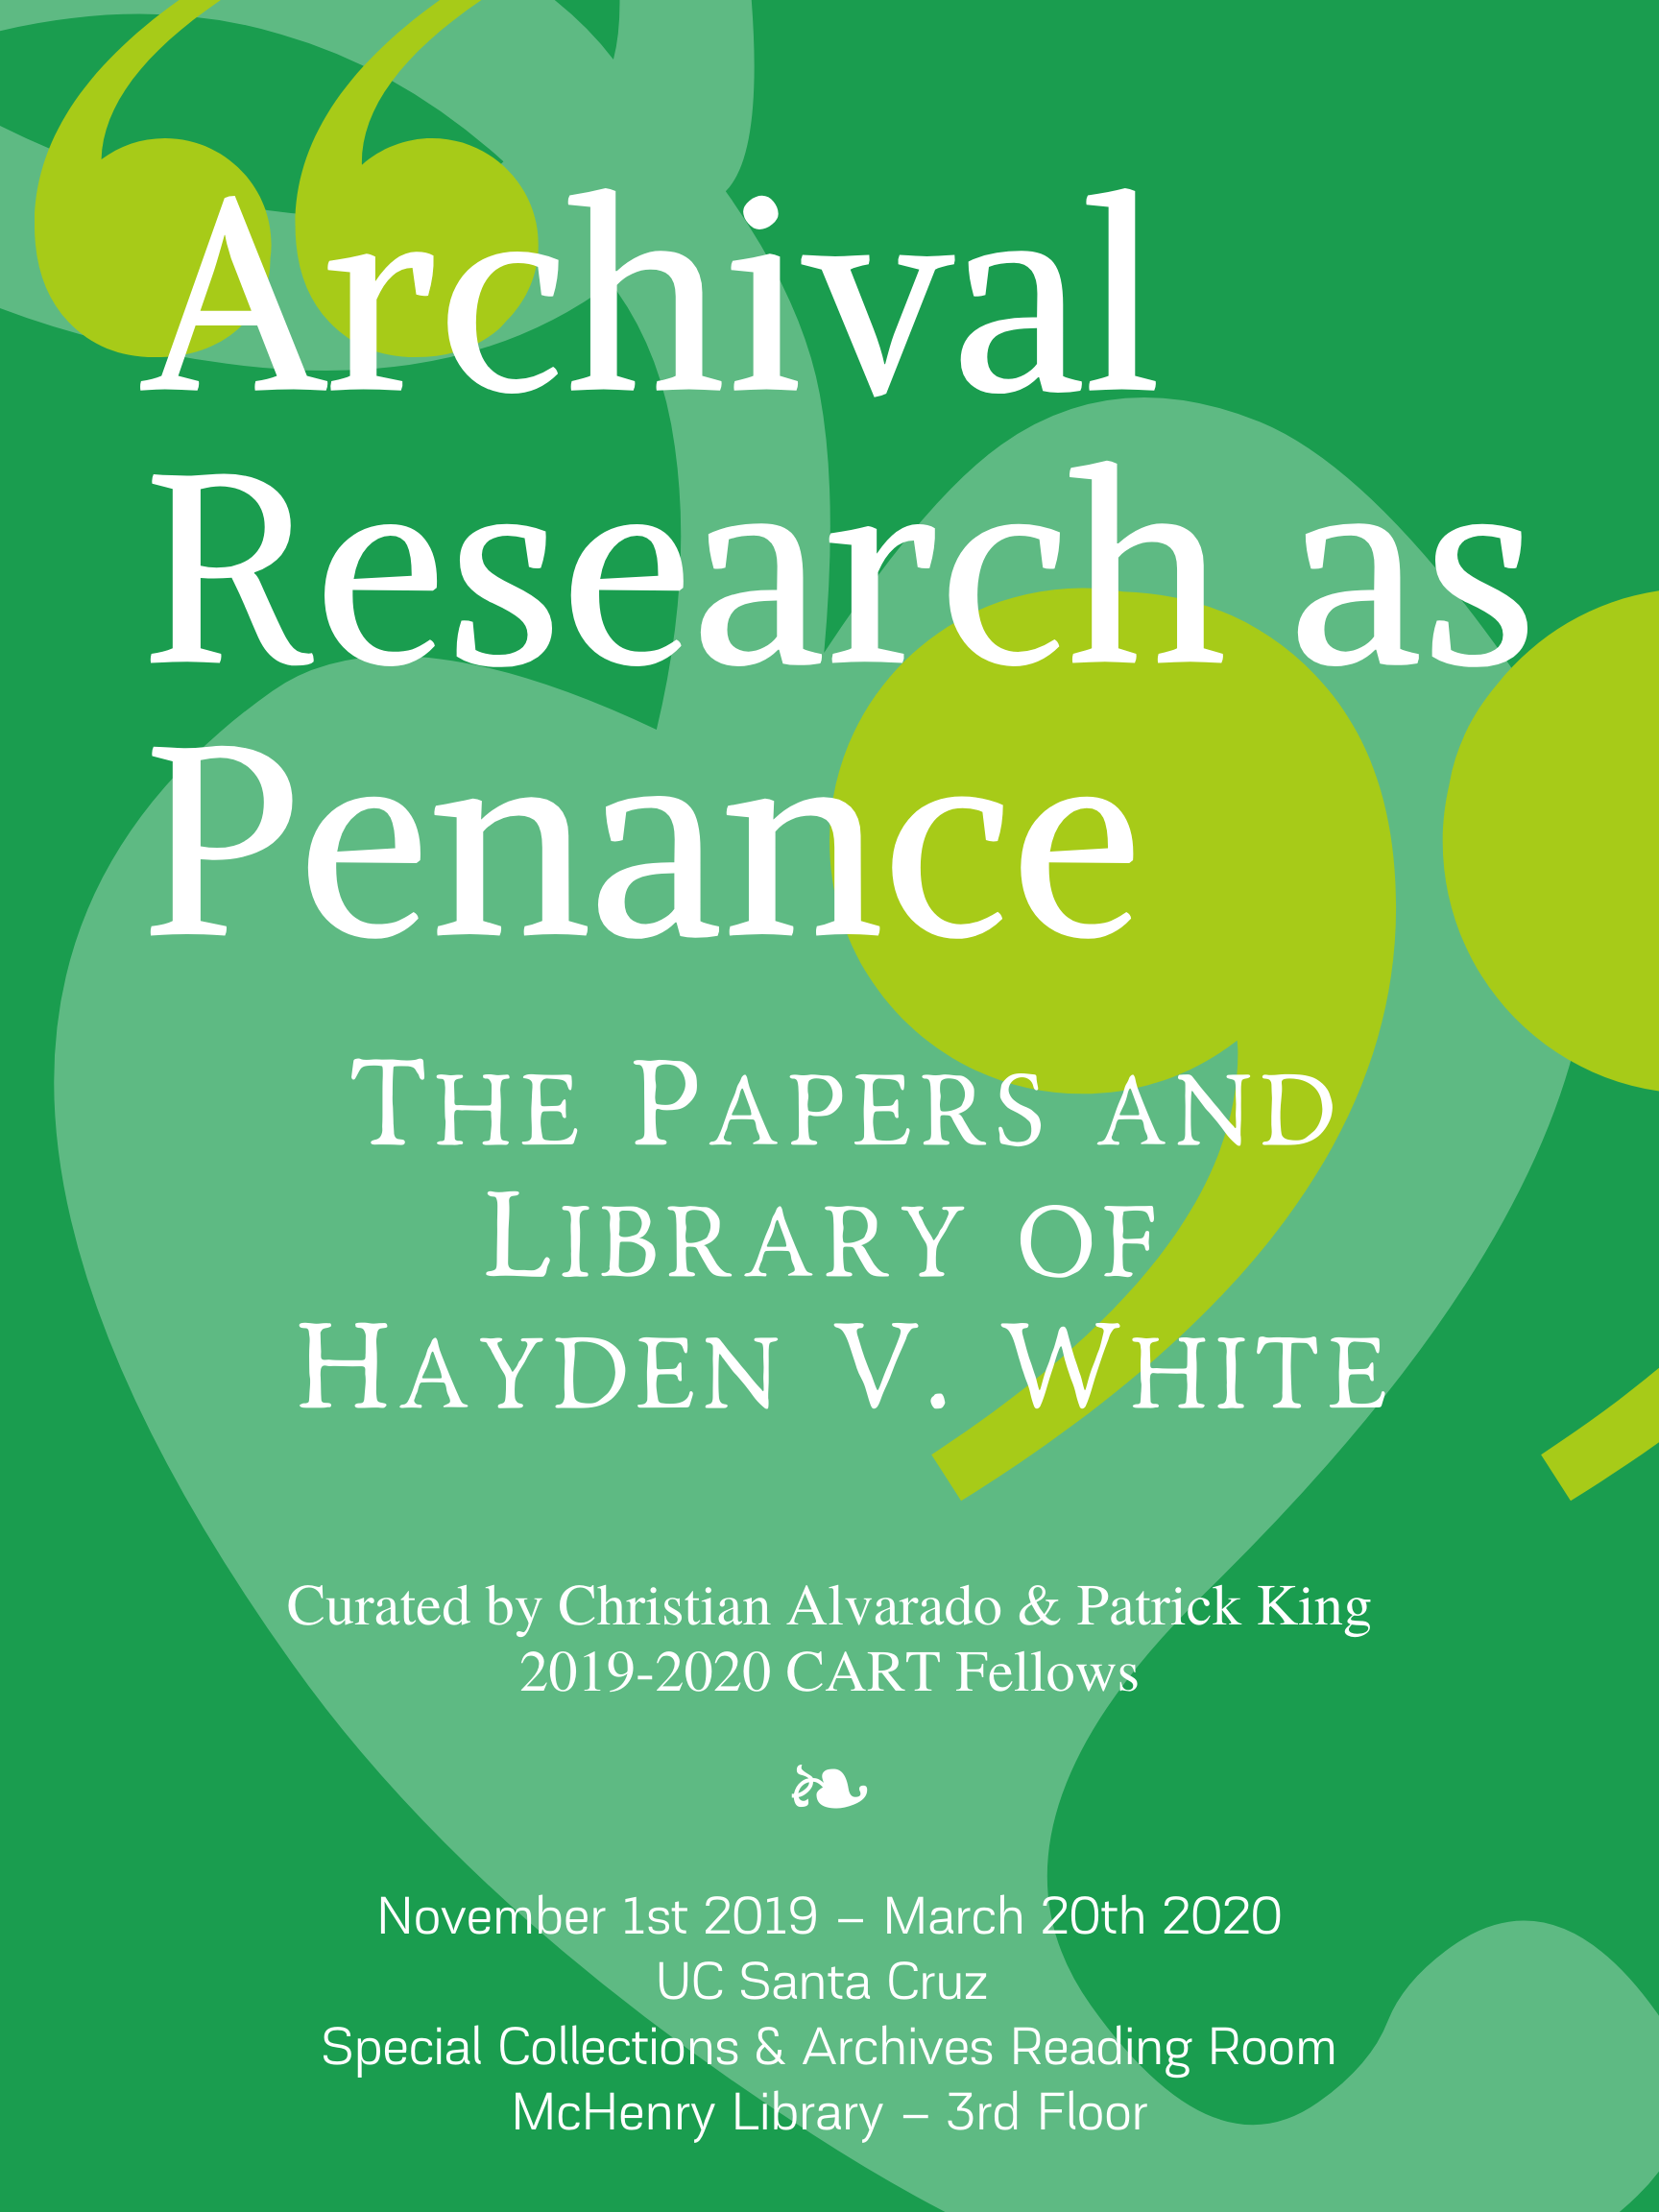 Archival Research as Penance